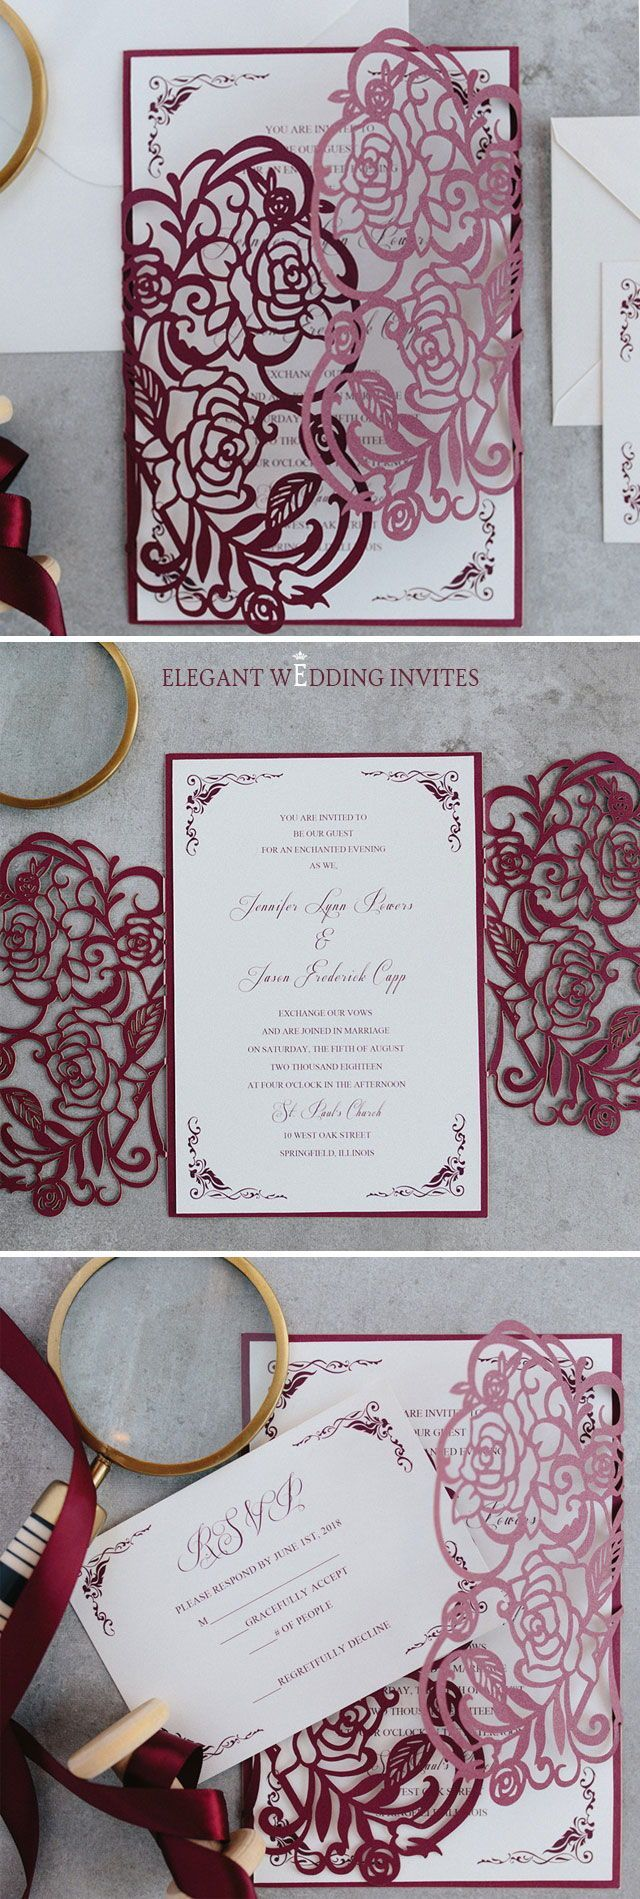 invitations wedding renewal vows ceremony%0A Resume Examples Word Download